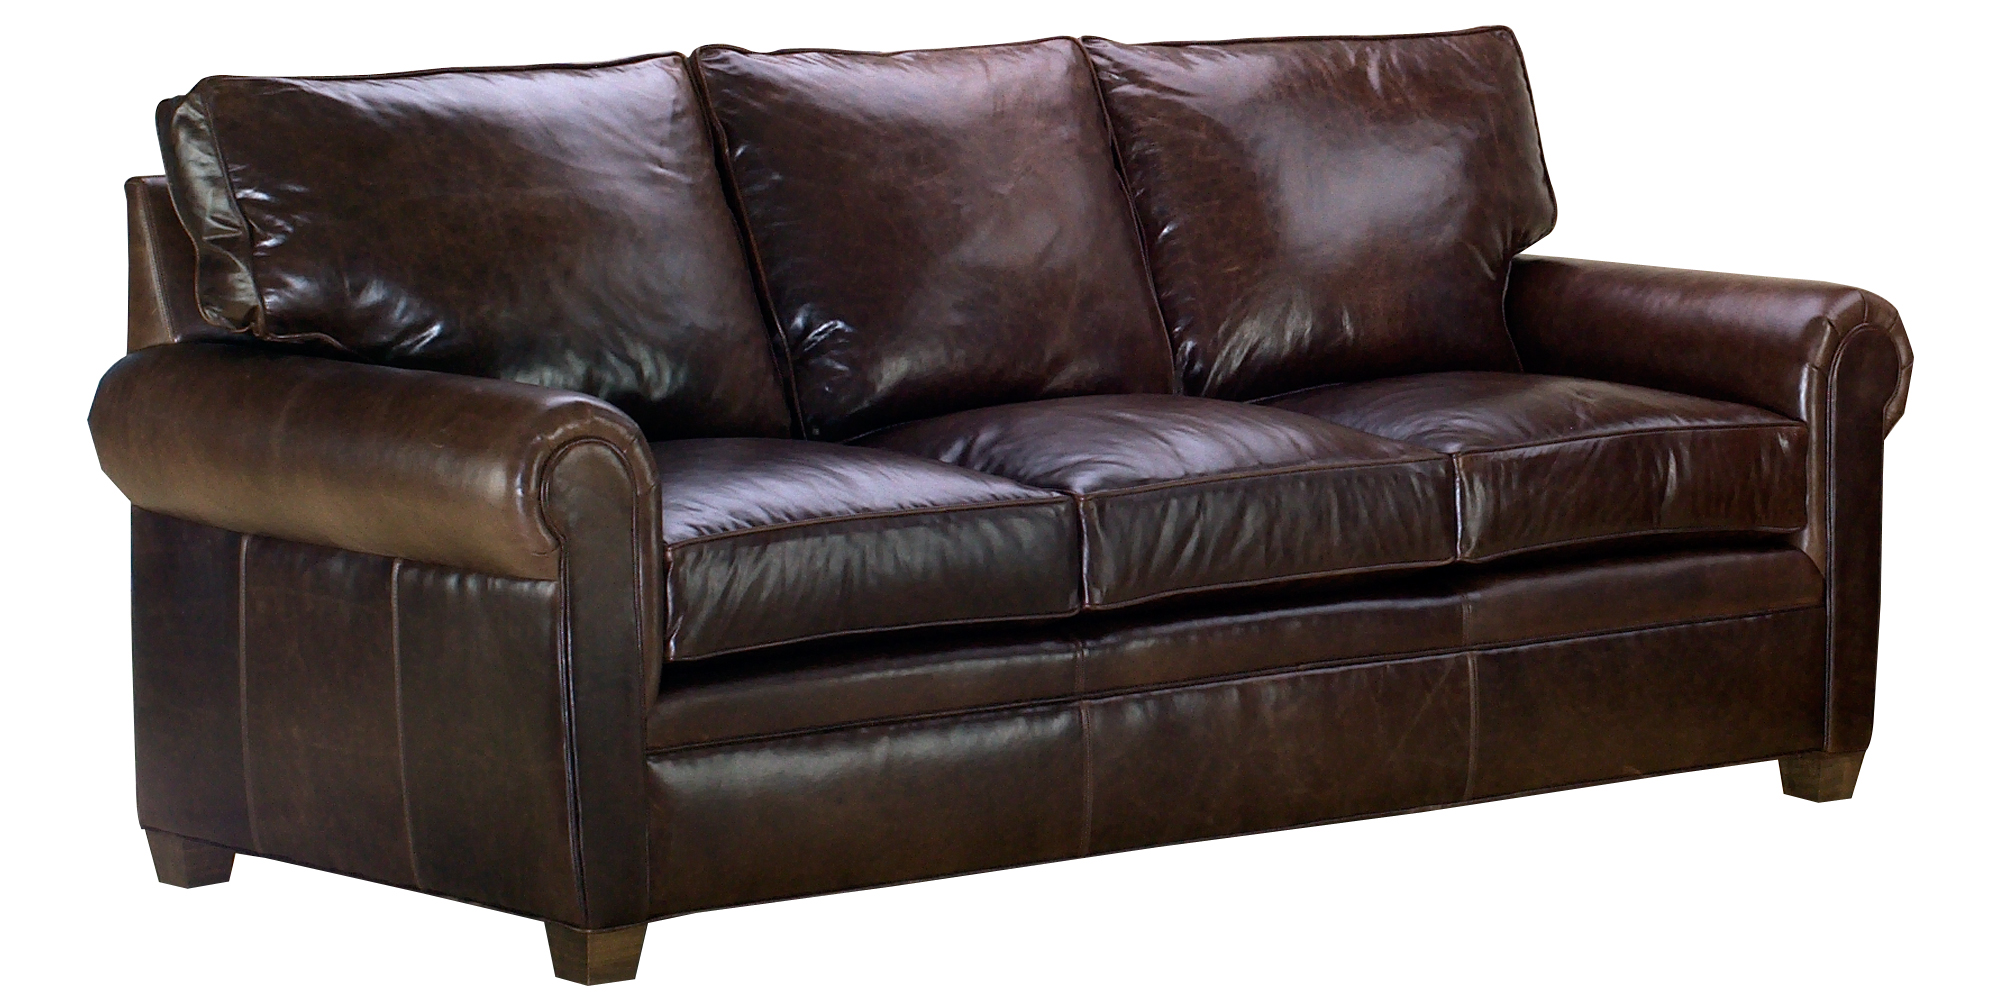 leather furniture rockefeller rolled arm sofa set AGKEAGA